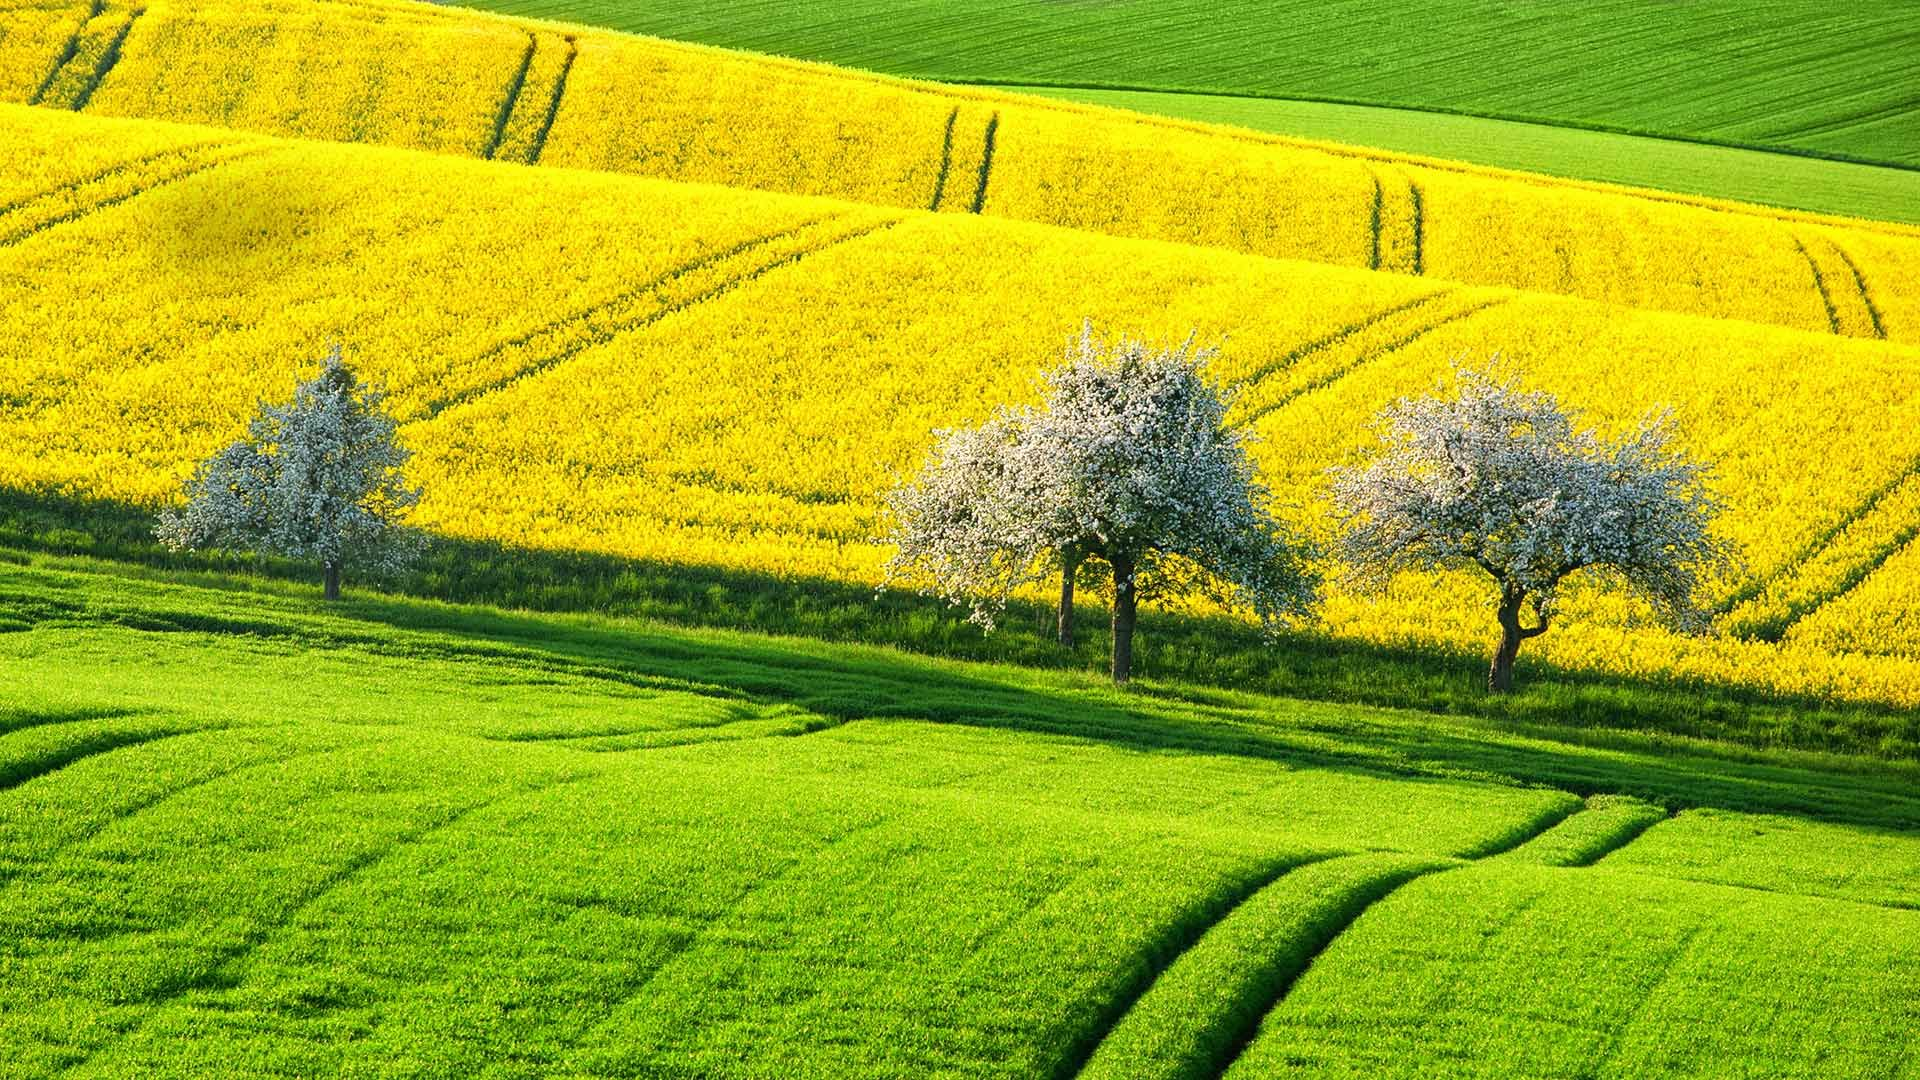 Canola Fields In Spring Canola Fields In Spring Germany